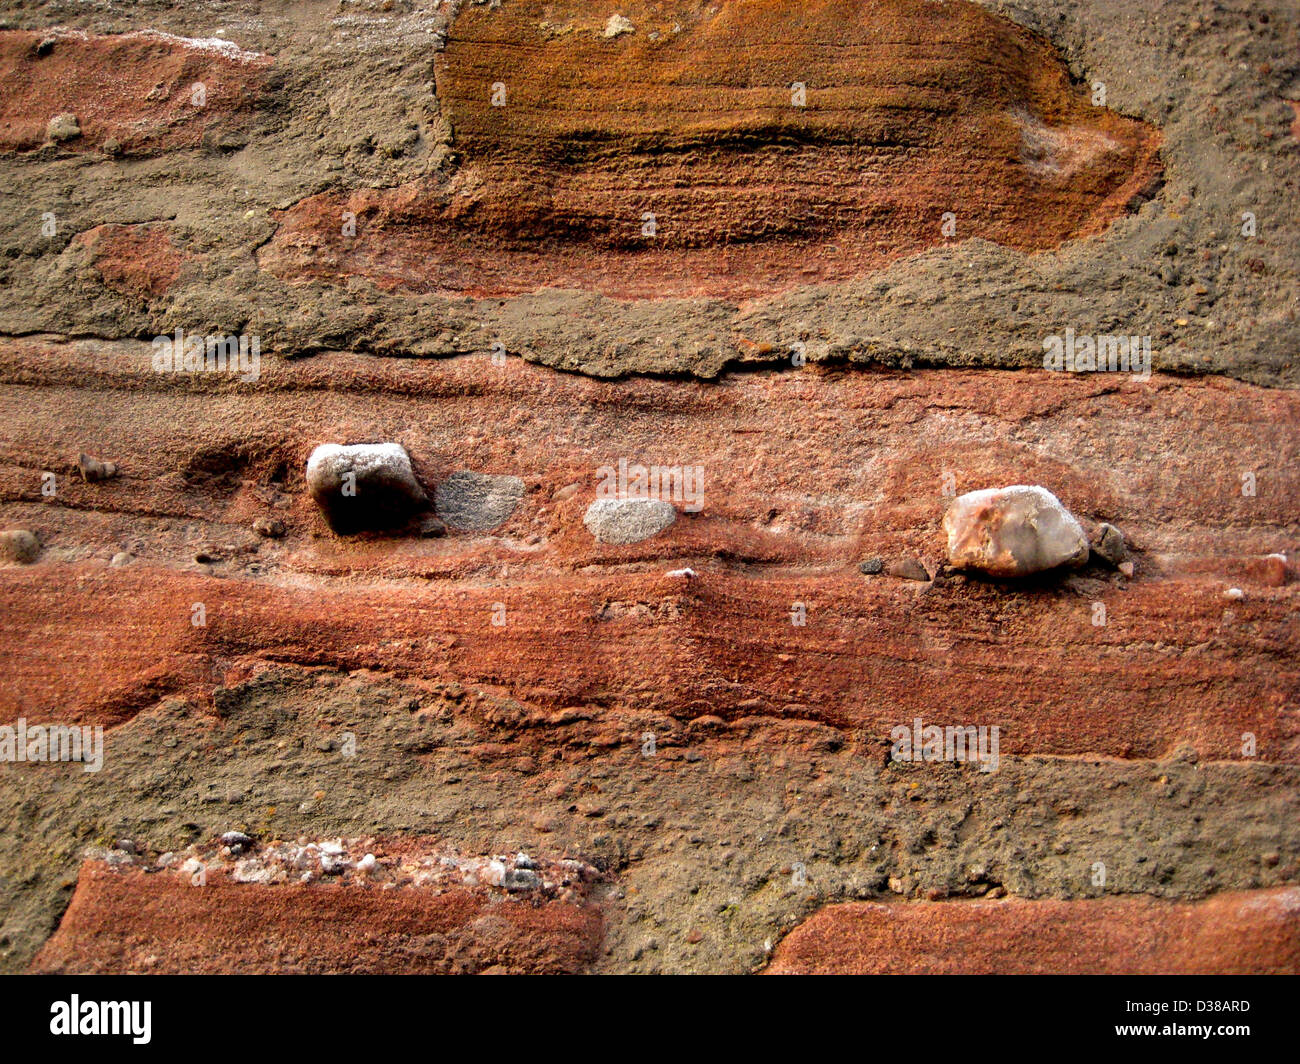 A old red sandstone wall in the Scotland, showing pebbles weathering out from the strata, and lime mortar - Stock Image